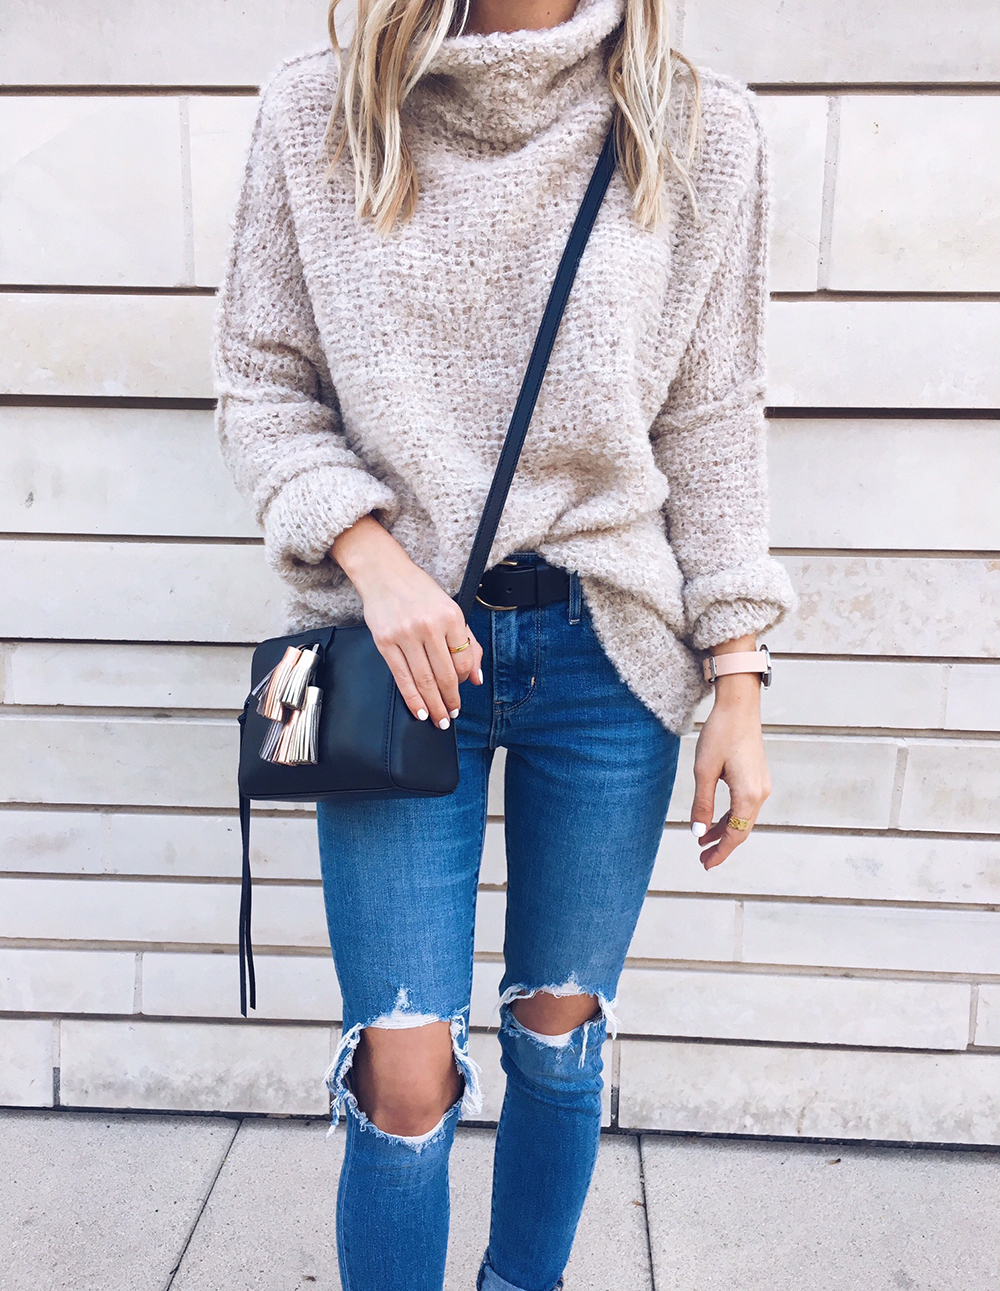 livvyland-blog-olivia-watson-instagram-roundup-december-cozy-free-people-chunky-sweater-rebecca-minkoff-metallic-tassel-handbag